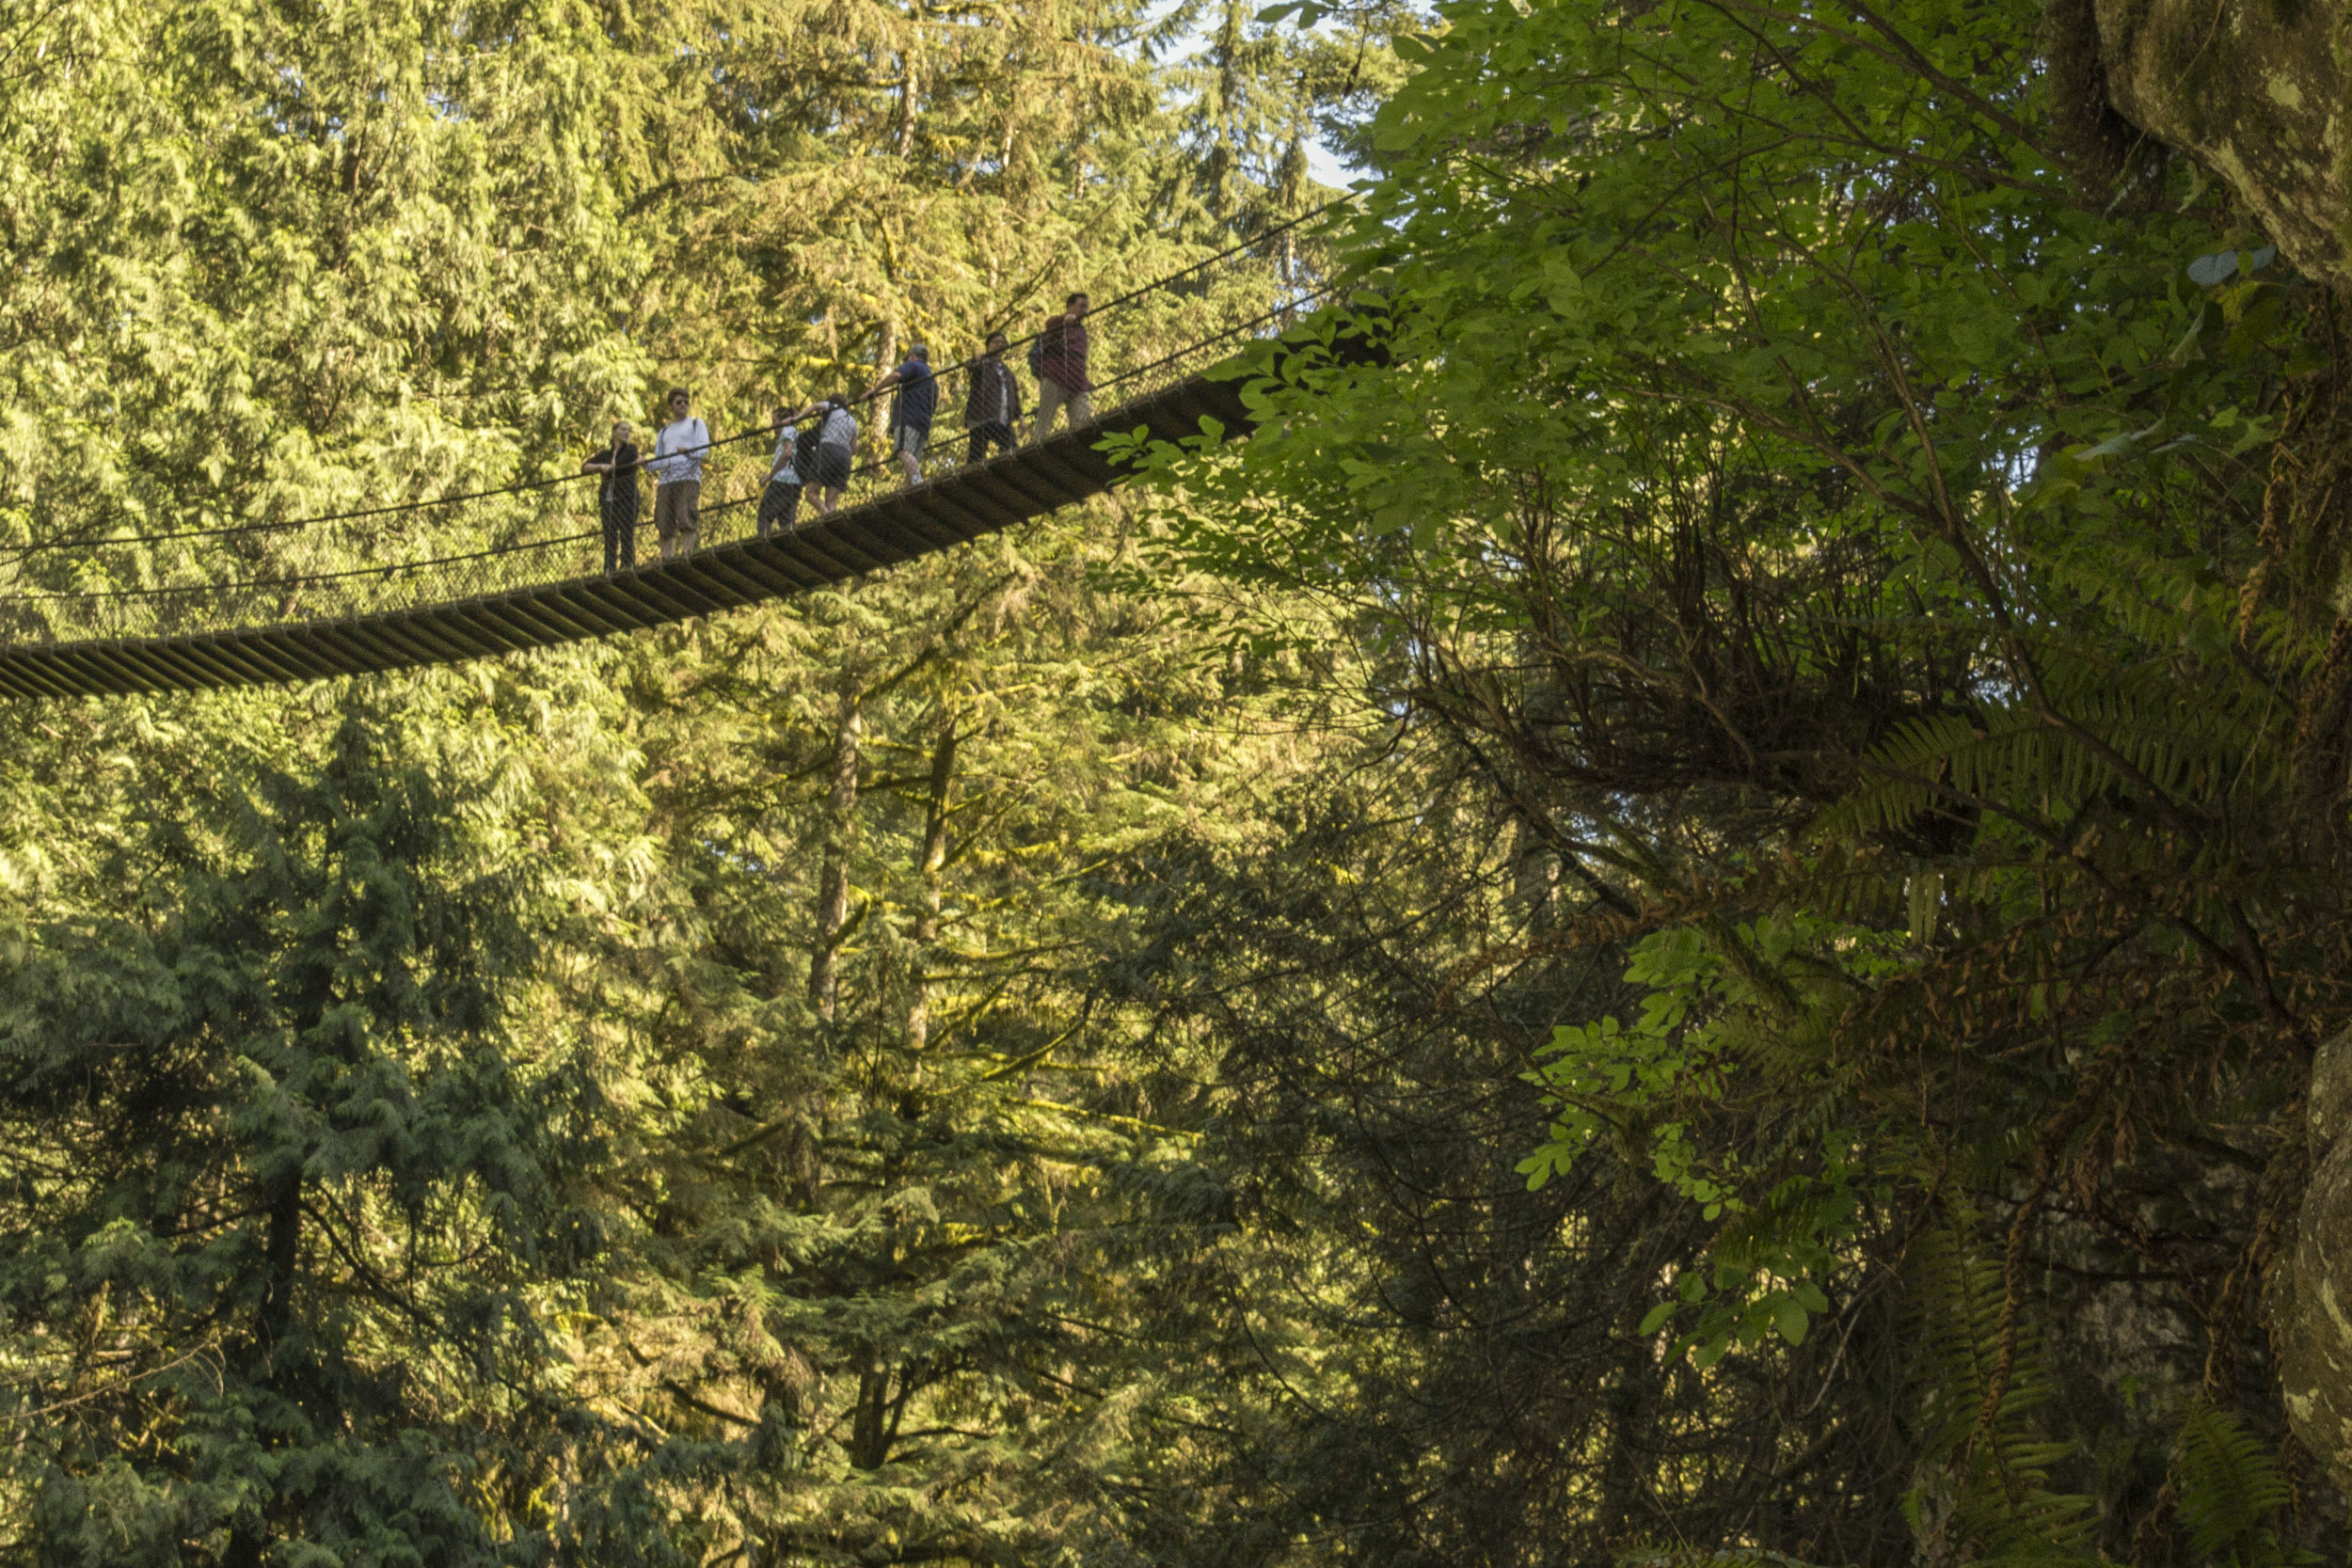 Guided cycling tour in Vancouver with suspension bridge